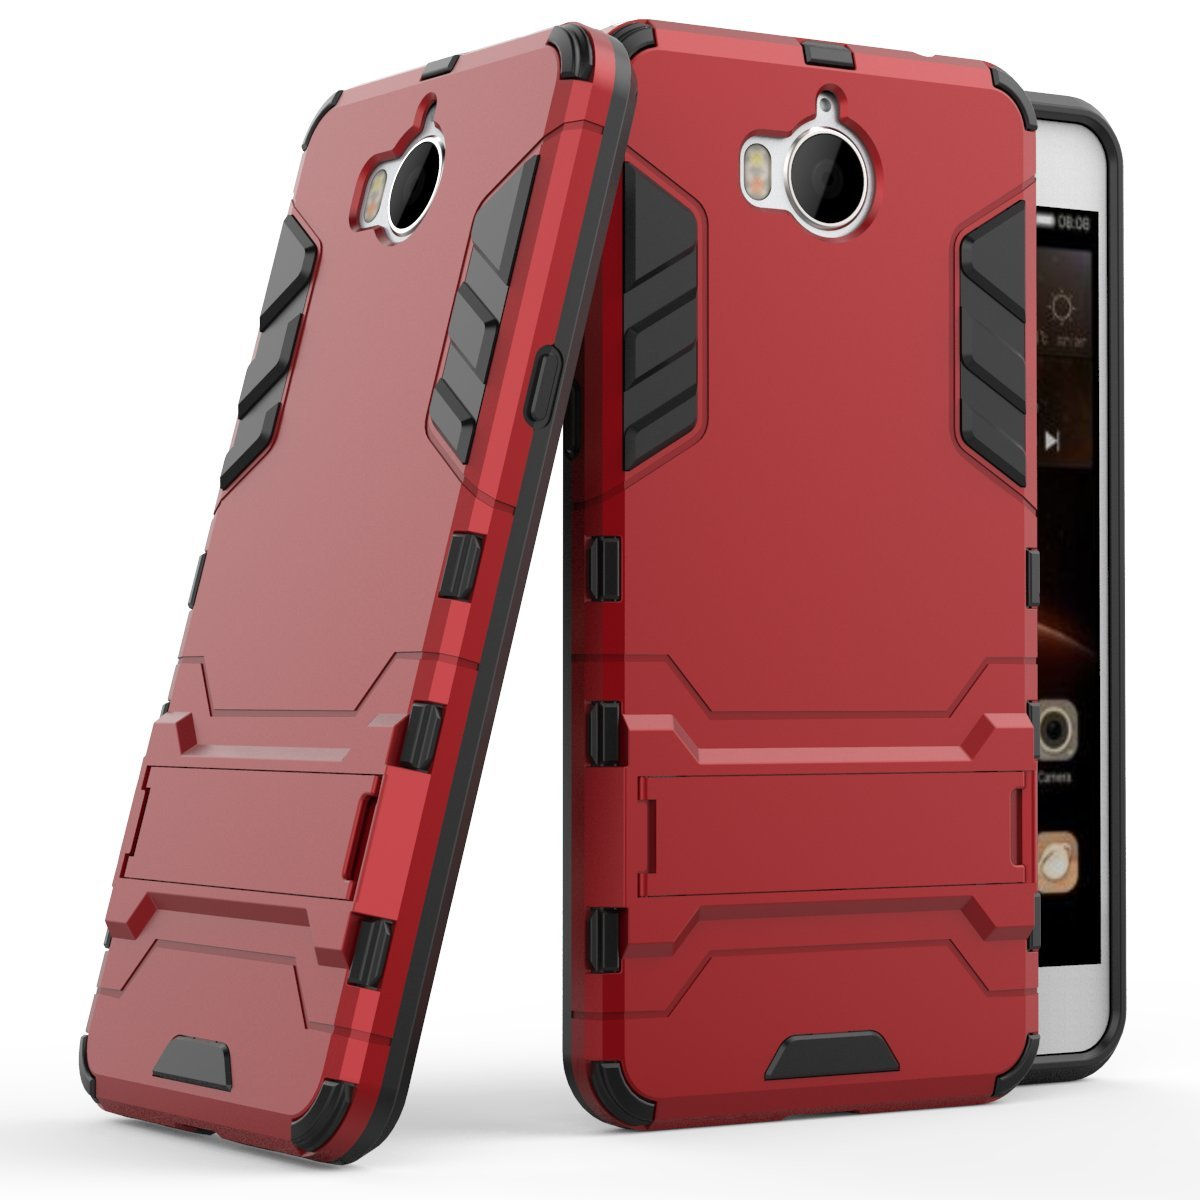 Huawei Y5 2017 Case, Y5 III Case, SsHhUu Shock Proof Cover Dual Layer Hybrid Armor Combo Protective Hard Case with Kickstand for Huawei Y5 2017 / ...